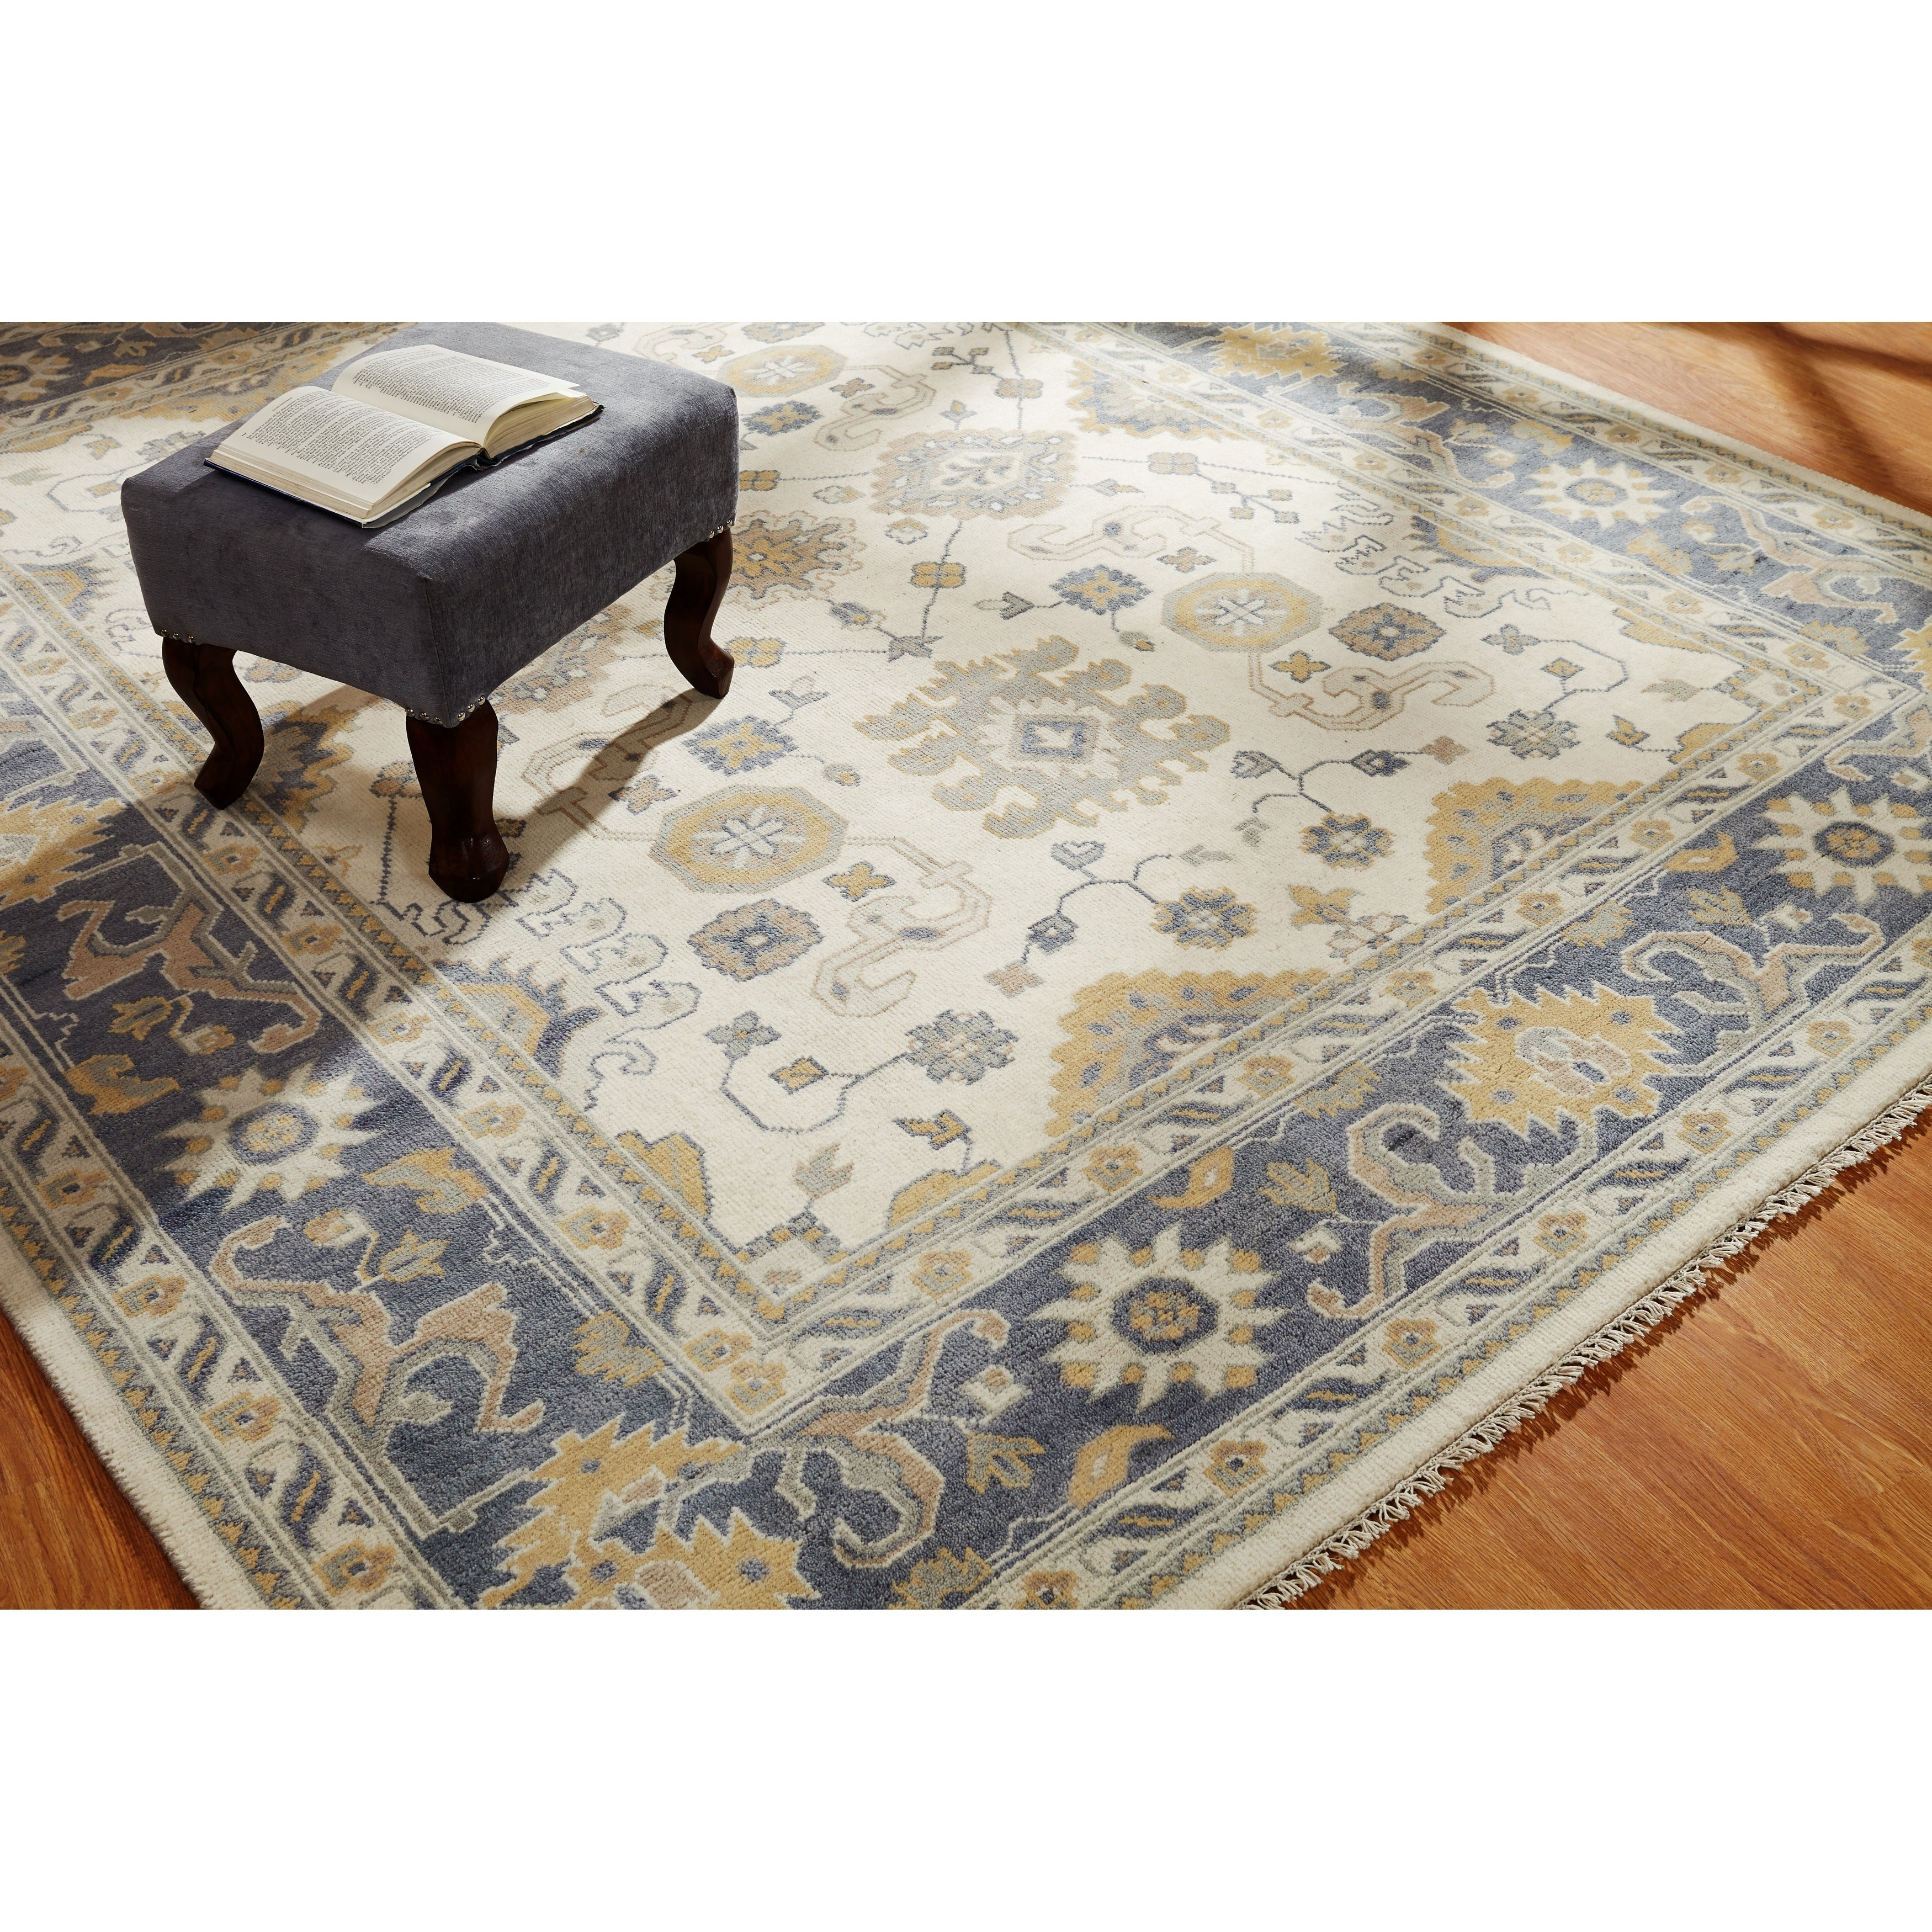 Umbria Ivory/Grey Wool Hand-knotted Rug (9 x 12) - 9 x 12 (Ivory/Grey - 9 x 12)